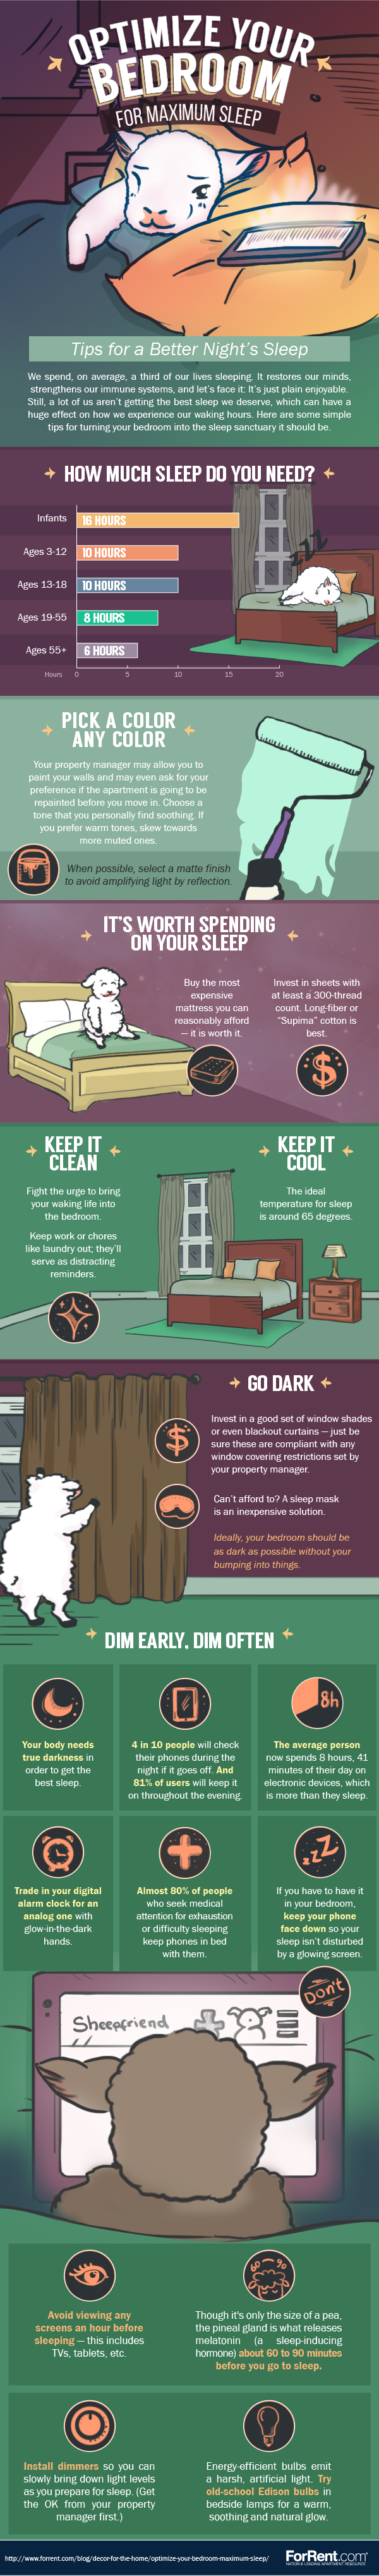 How To Optimize Your Bedroom for Maximum Sleep